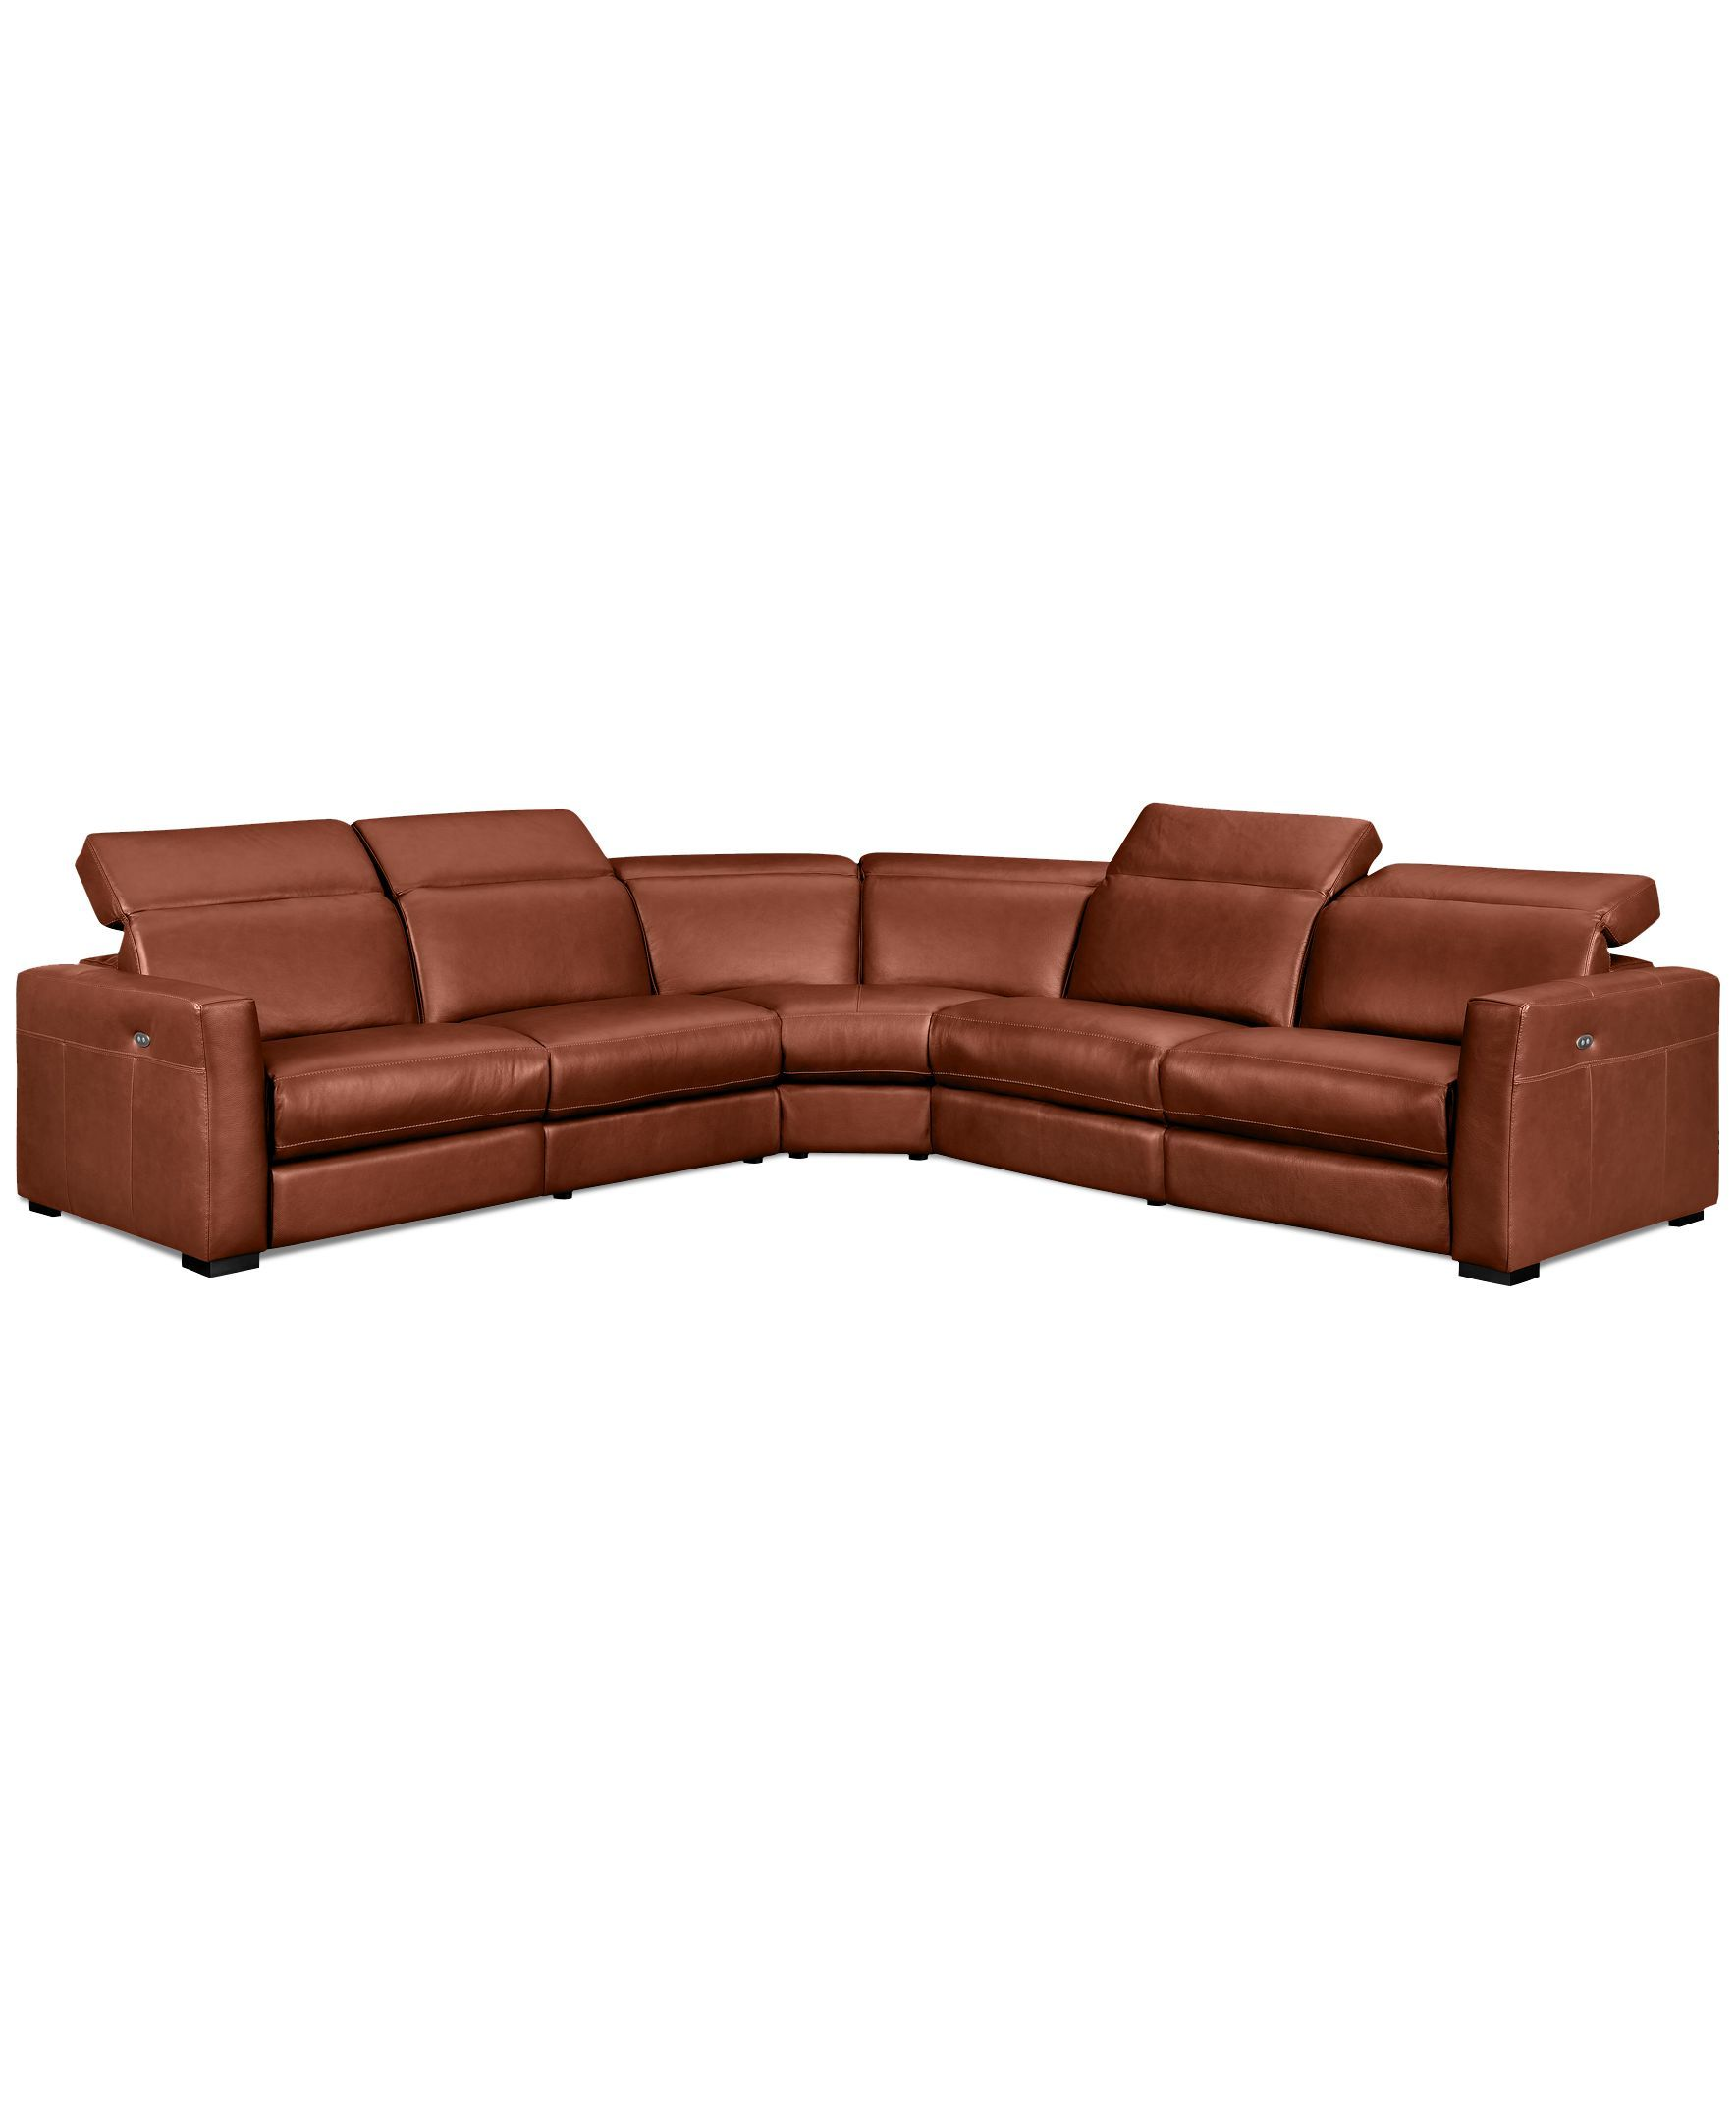 Nicolo 5 pc Leather Sectional Sofa with 3 Power Recliners with